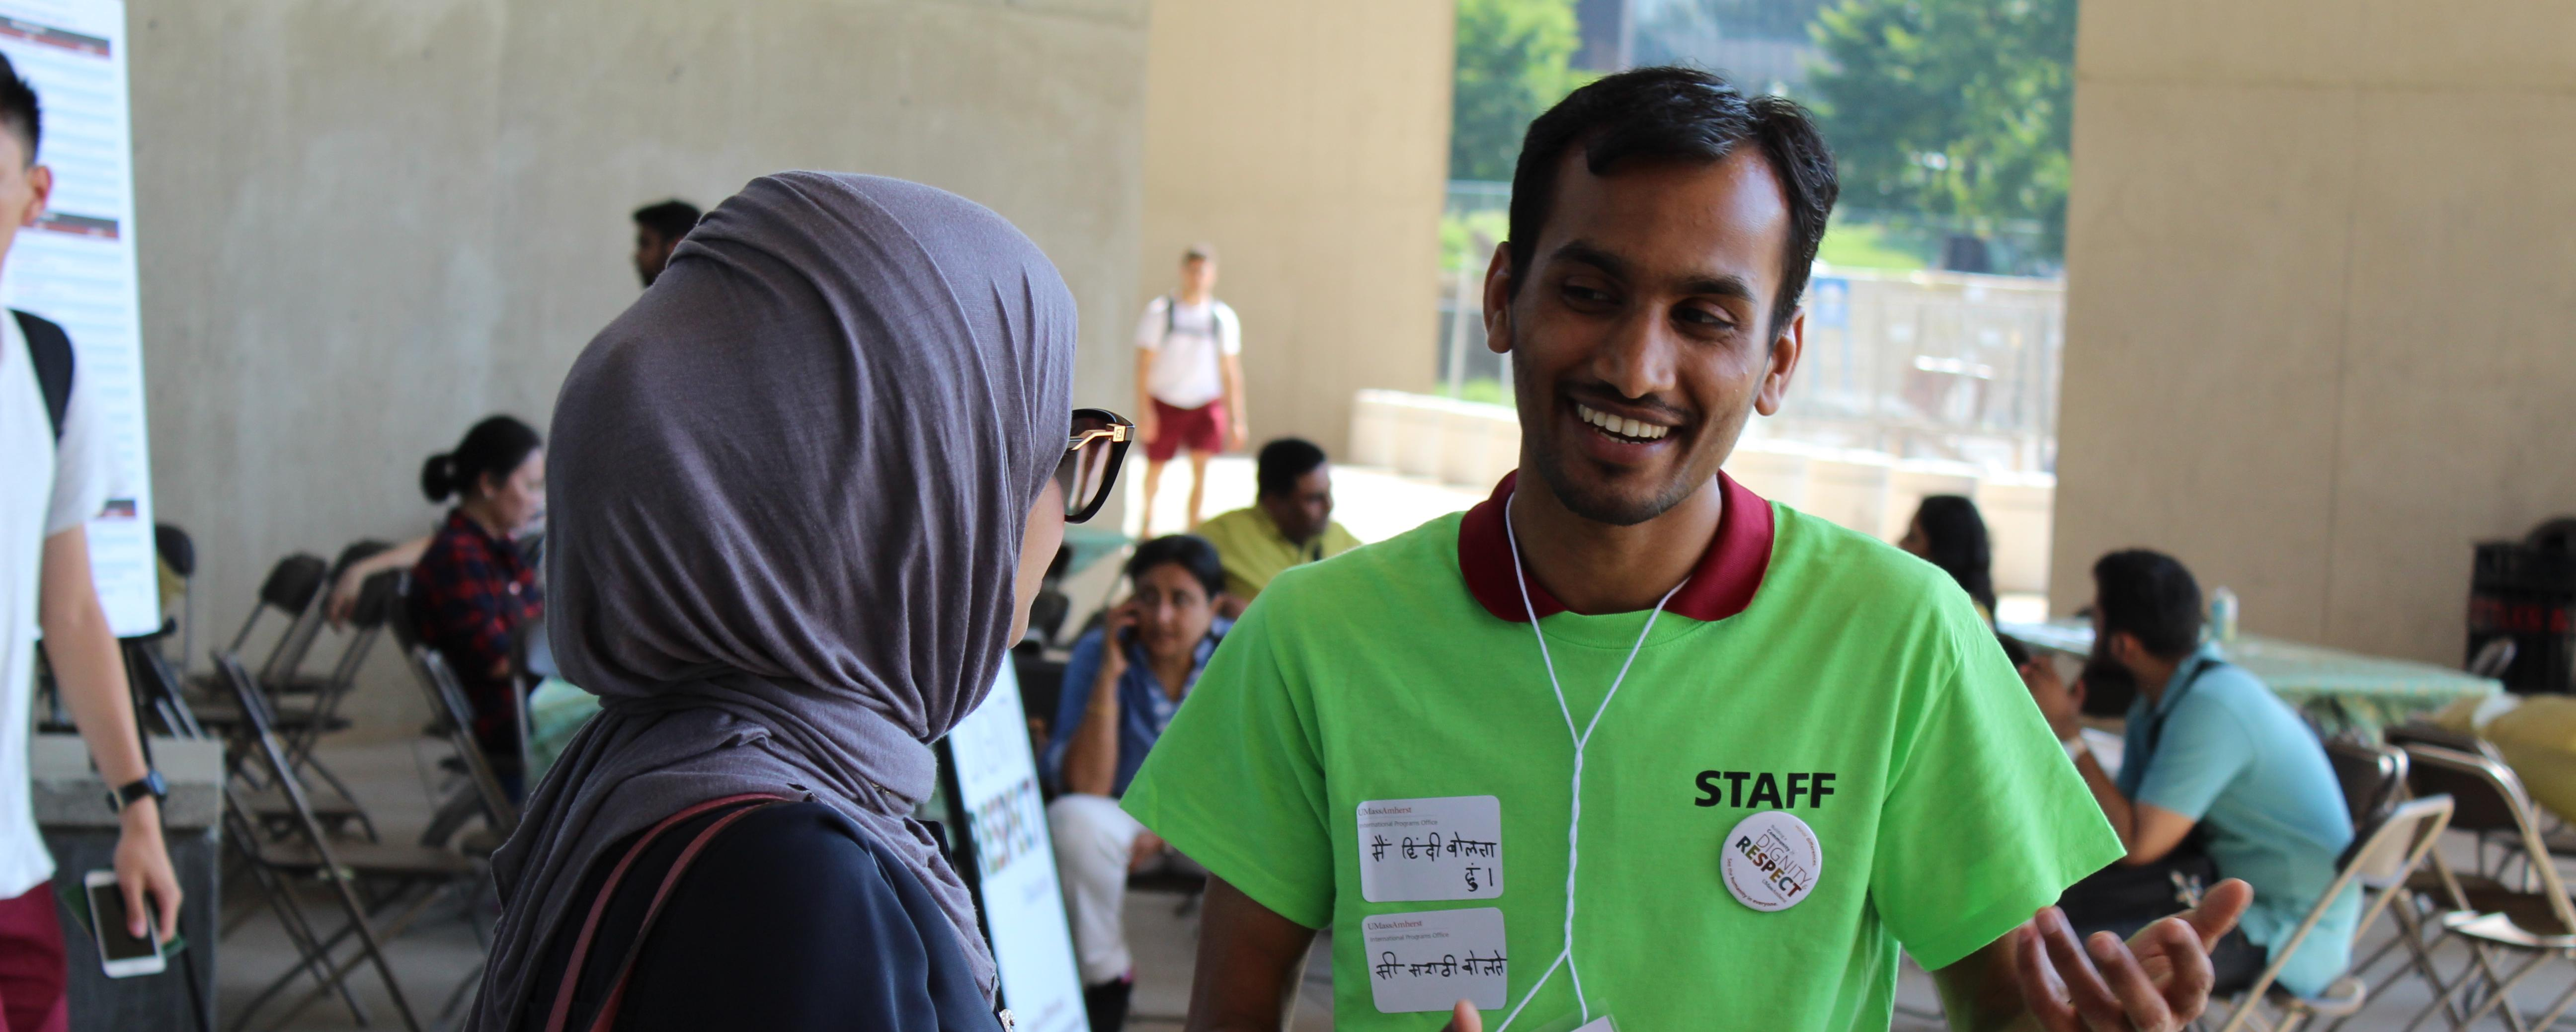 A student volunteer helps at New Student Orientation